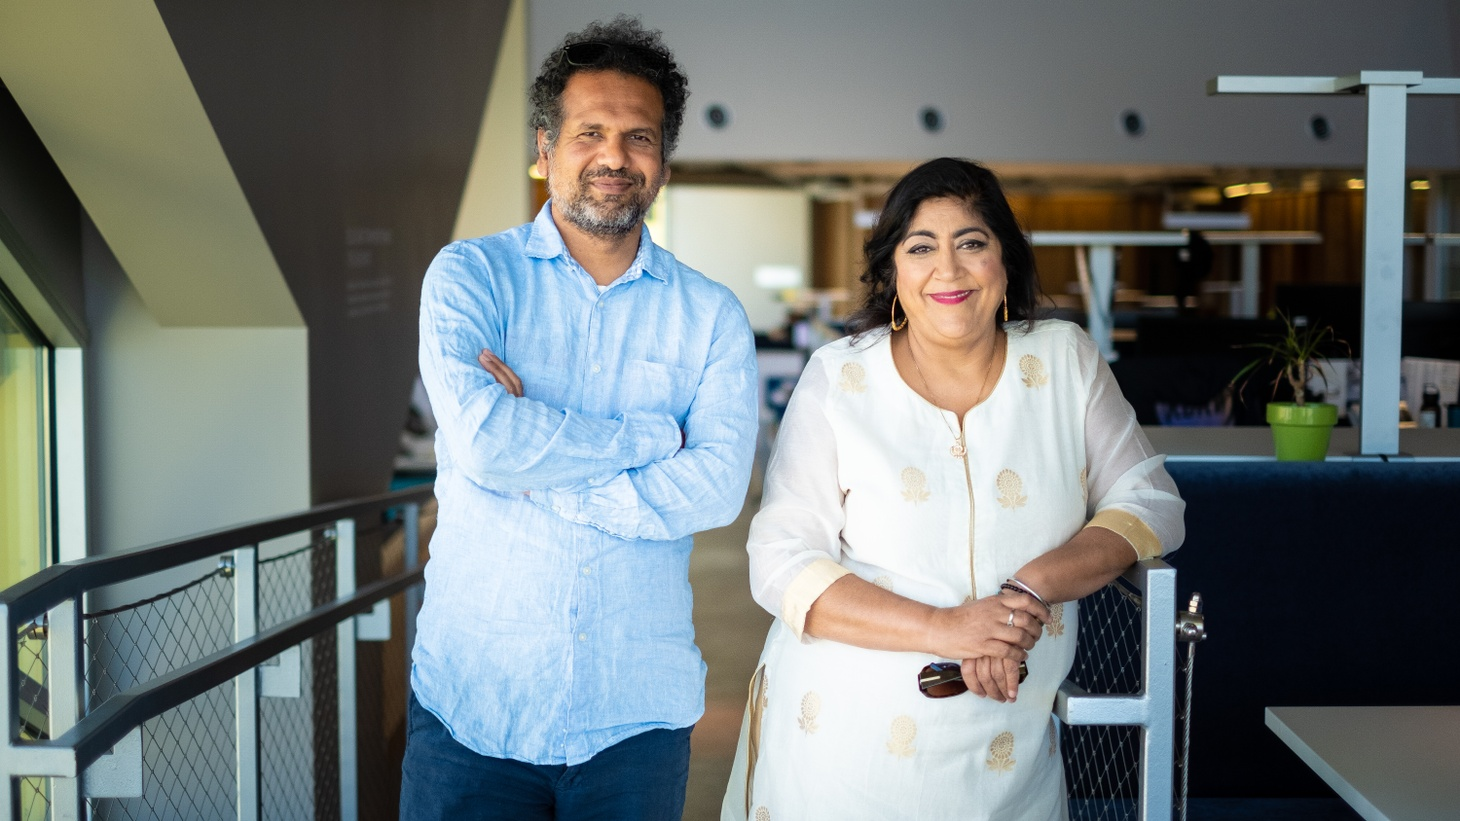 Journalist Sarfraz Manzoor and filmmaker Gurinder Chadha at KCRW.